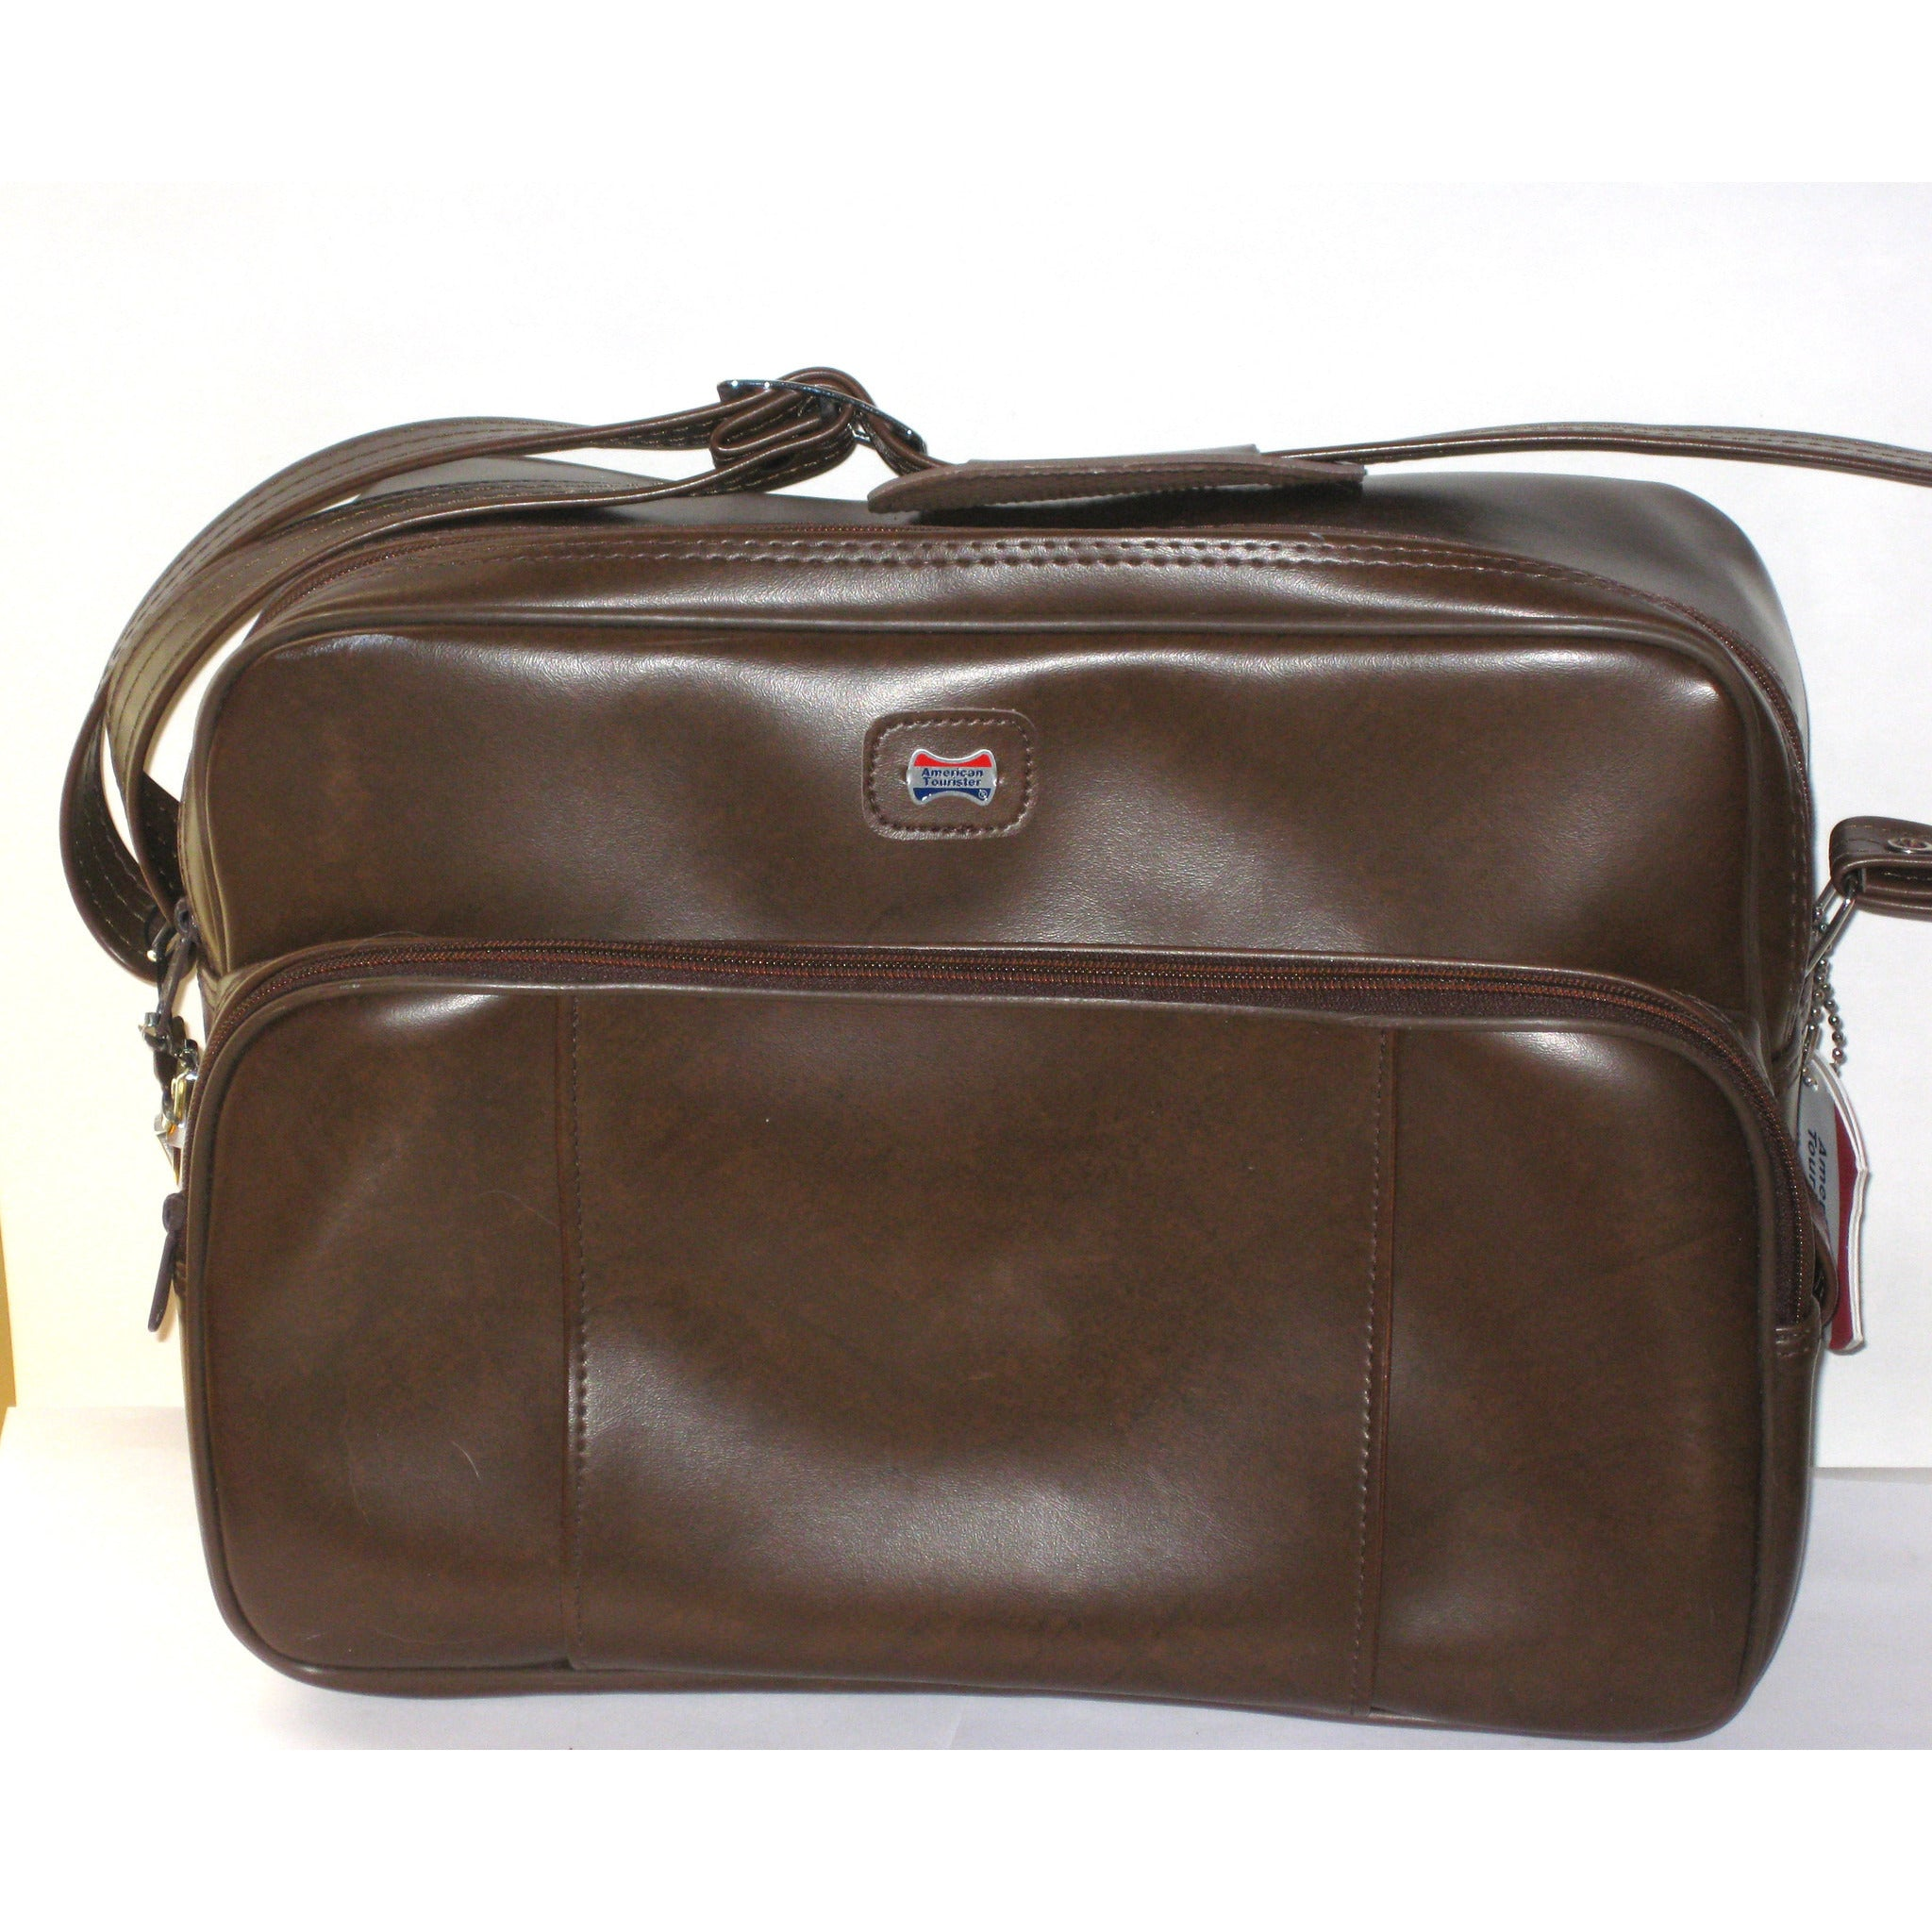 Vintage Brown Vinyl Travelbag By American Tourister